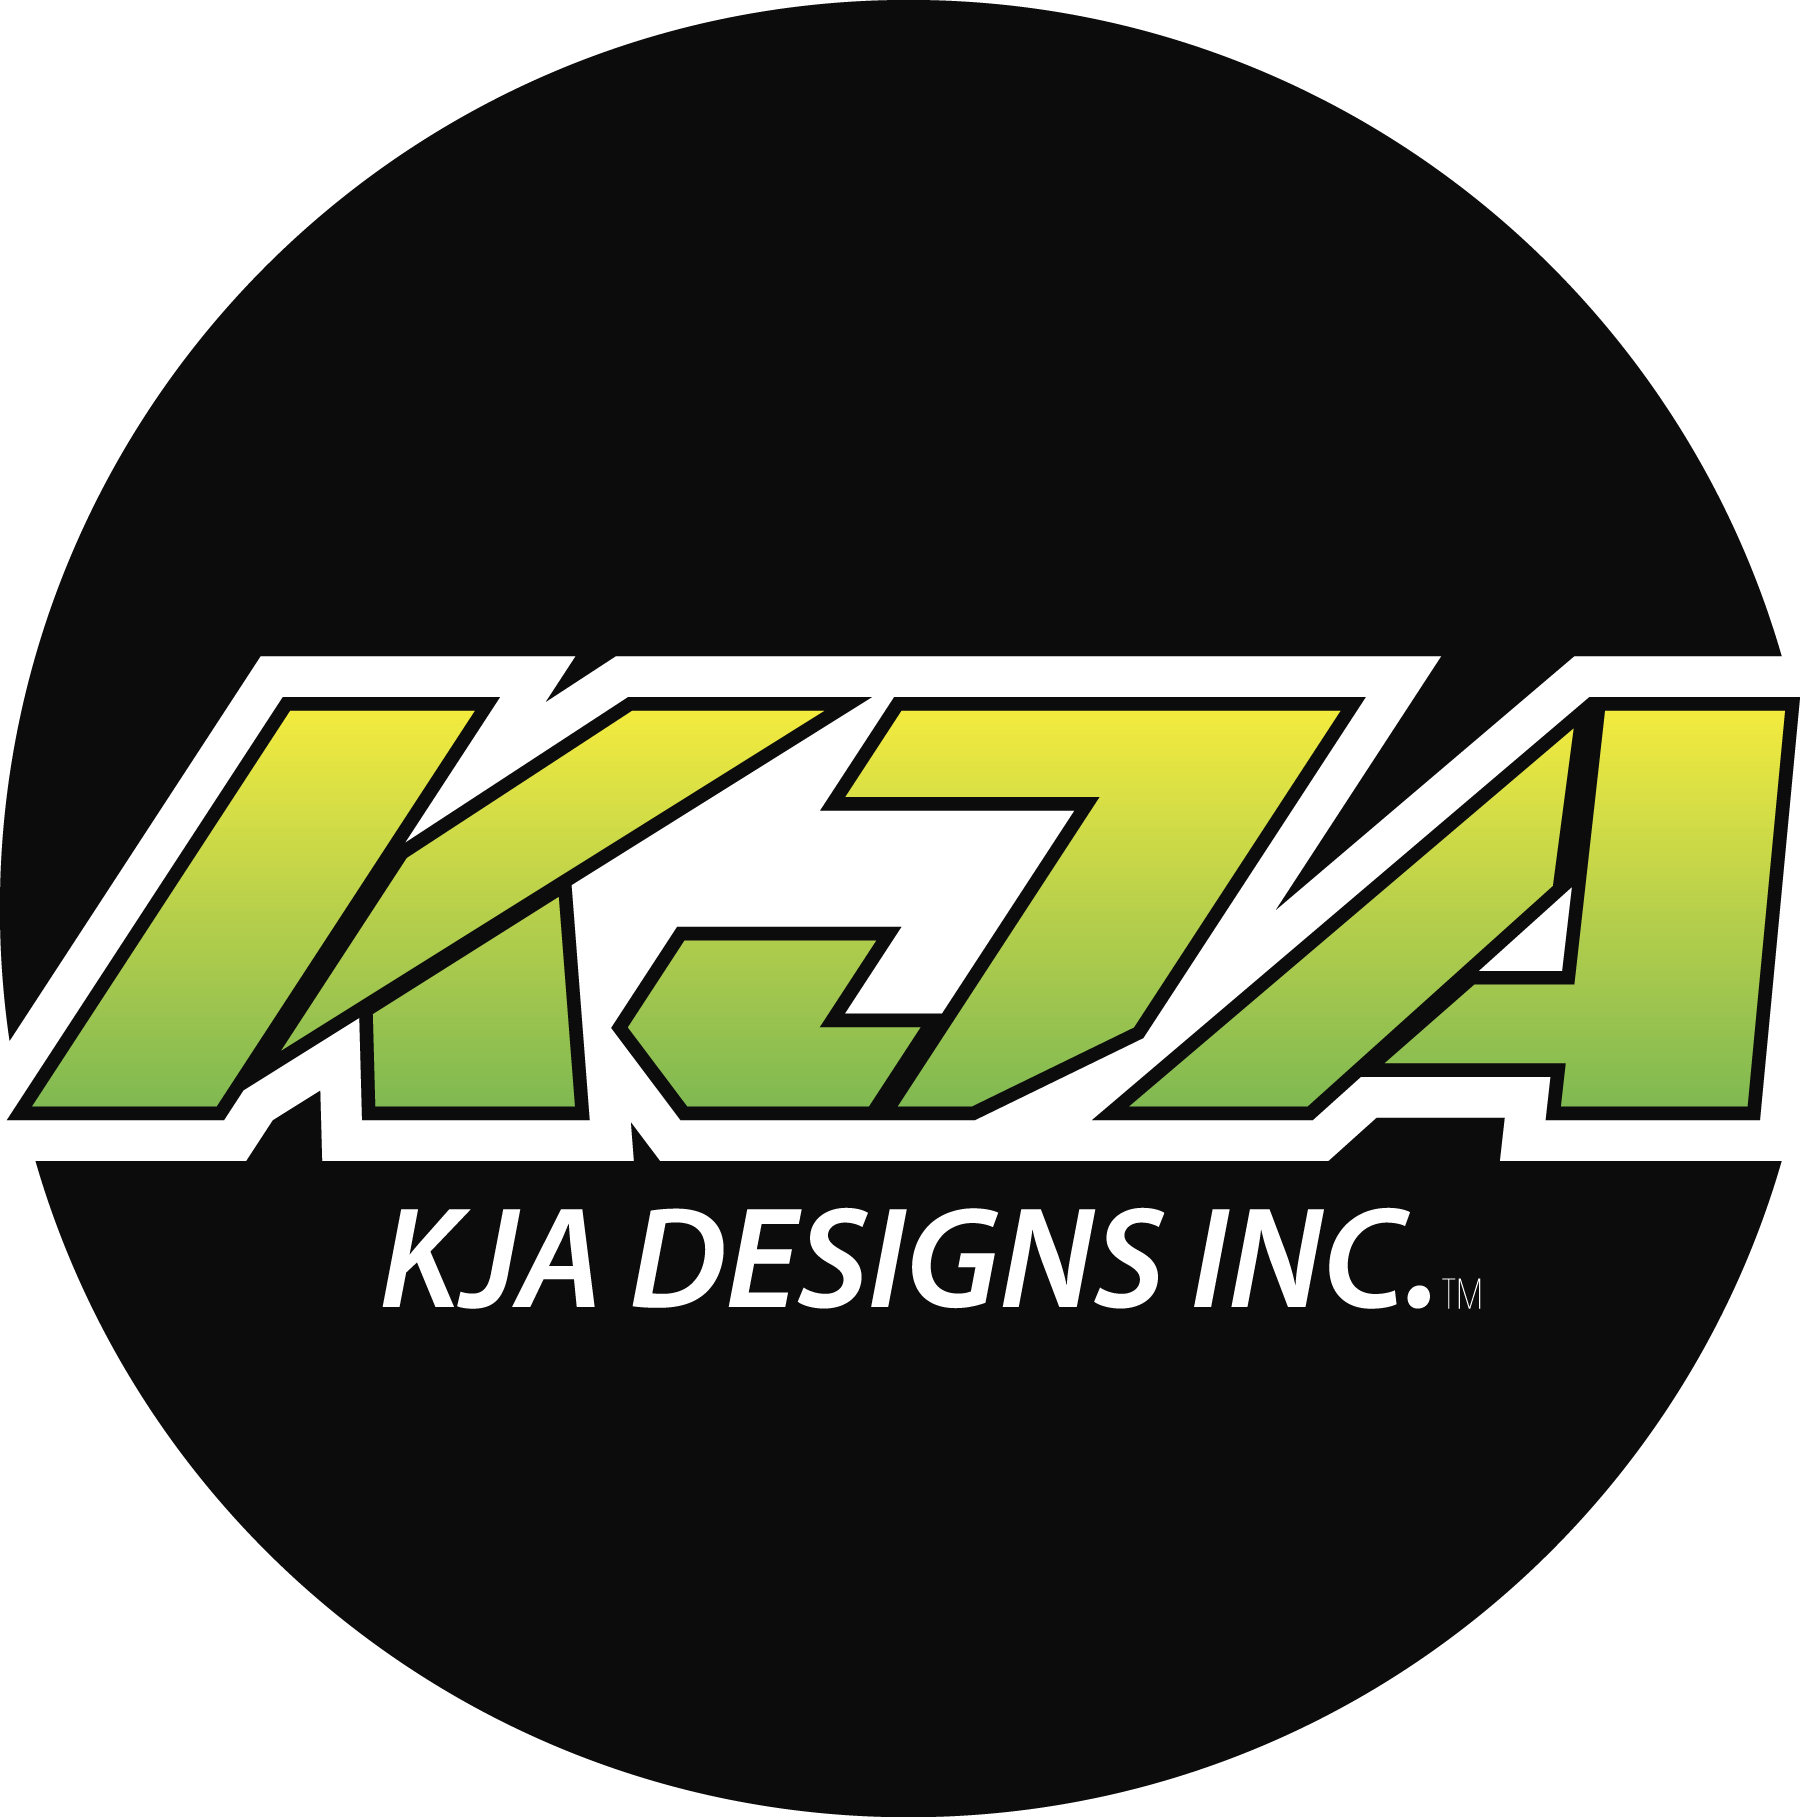 KJA Designs Inc.™ 2B on site